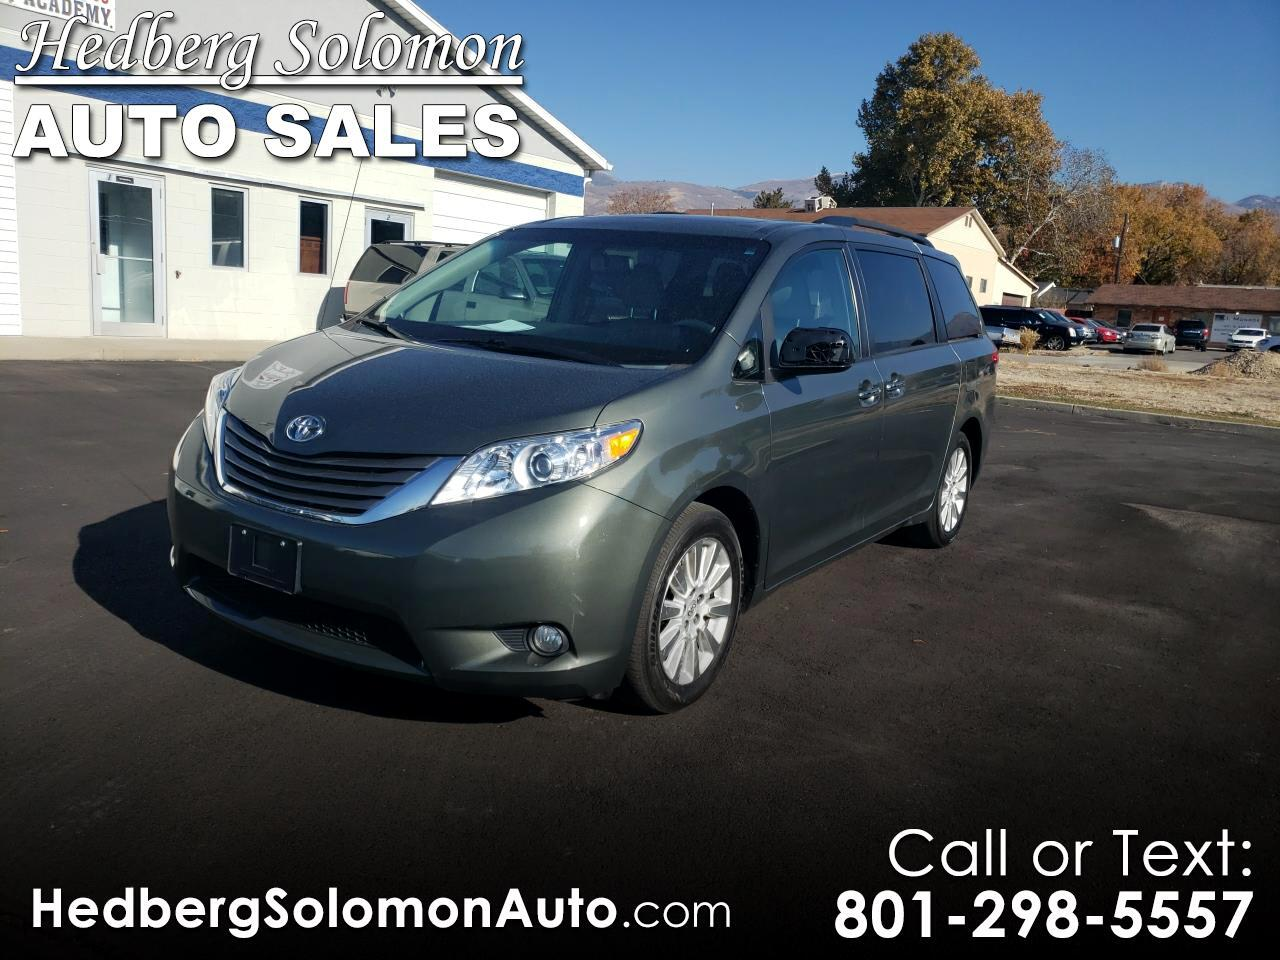 2013 Toyota Sienna 5dr 7-Pass Van XLE Ltd AWD (Natl)